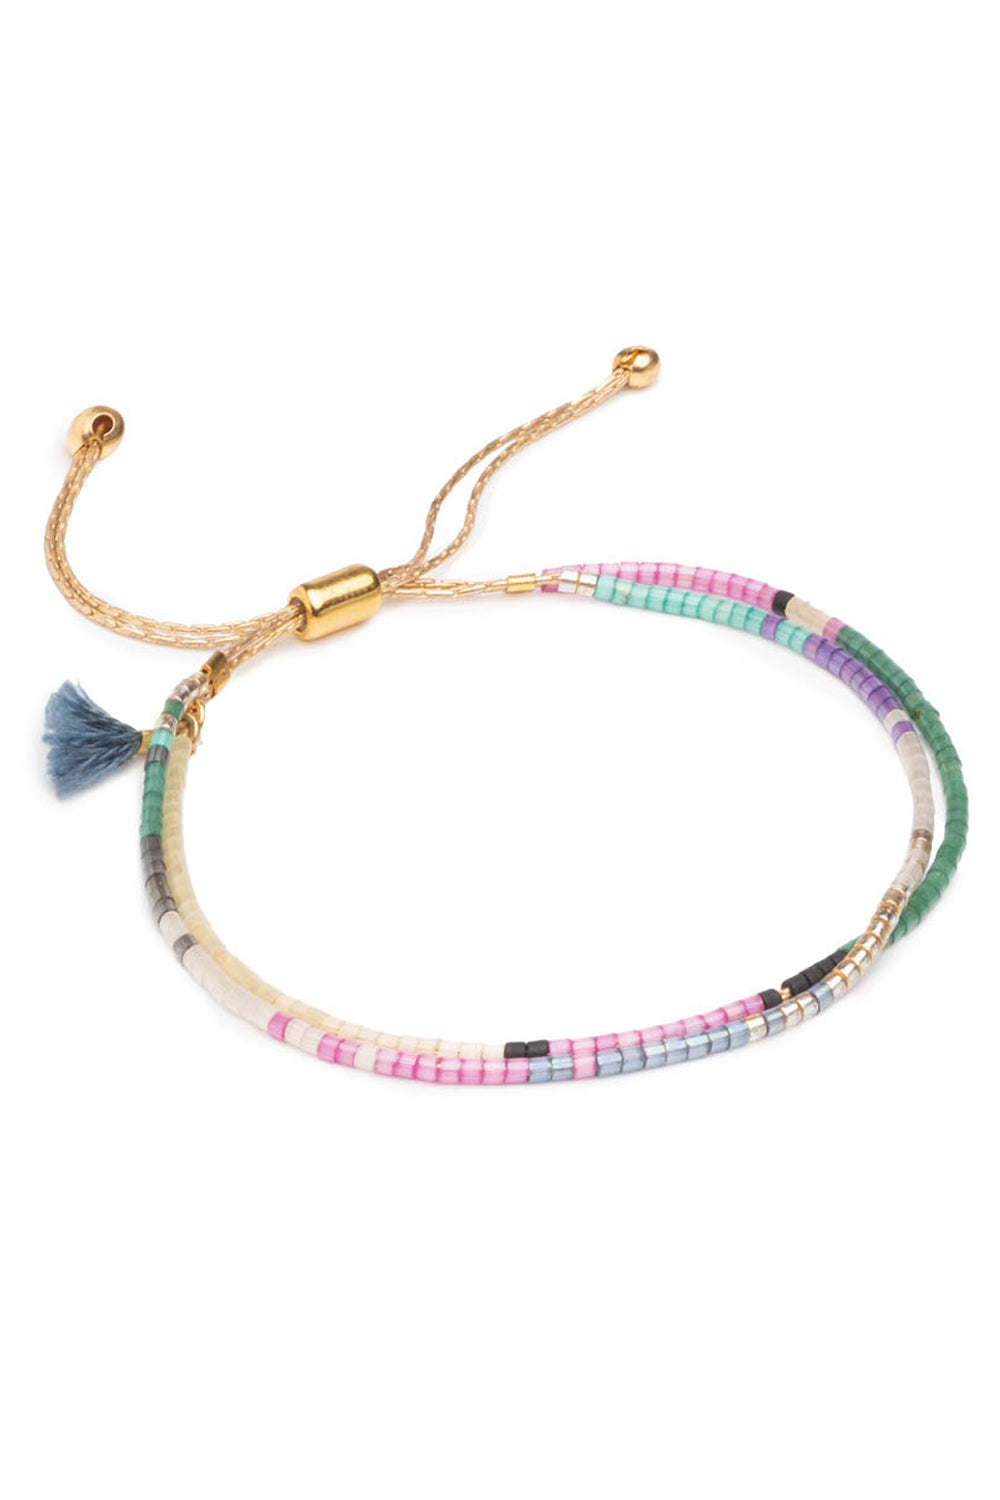 Carlita Slide Bracelet in Multi